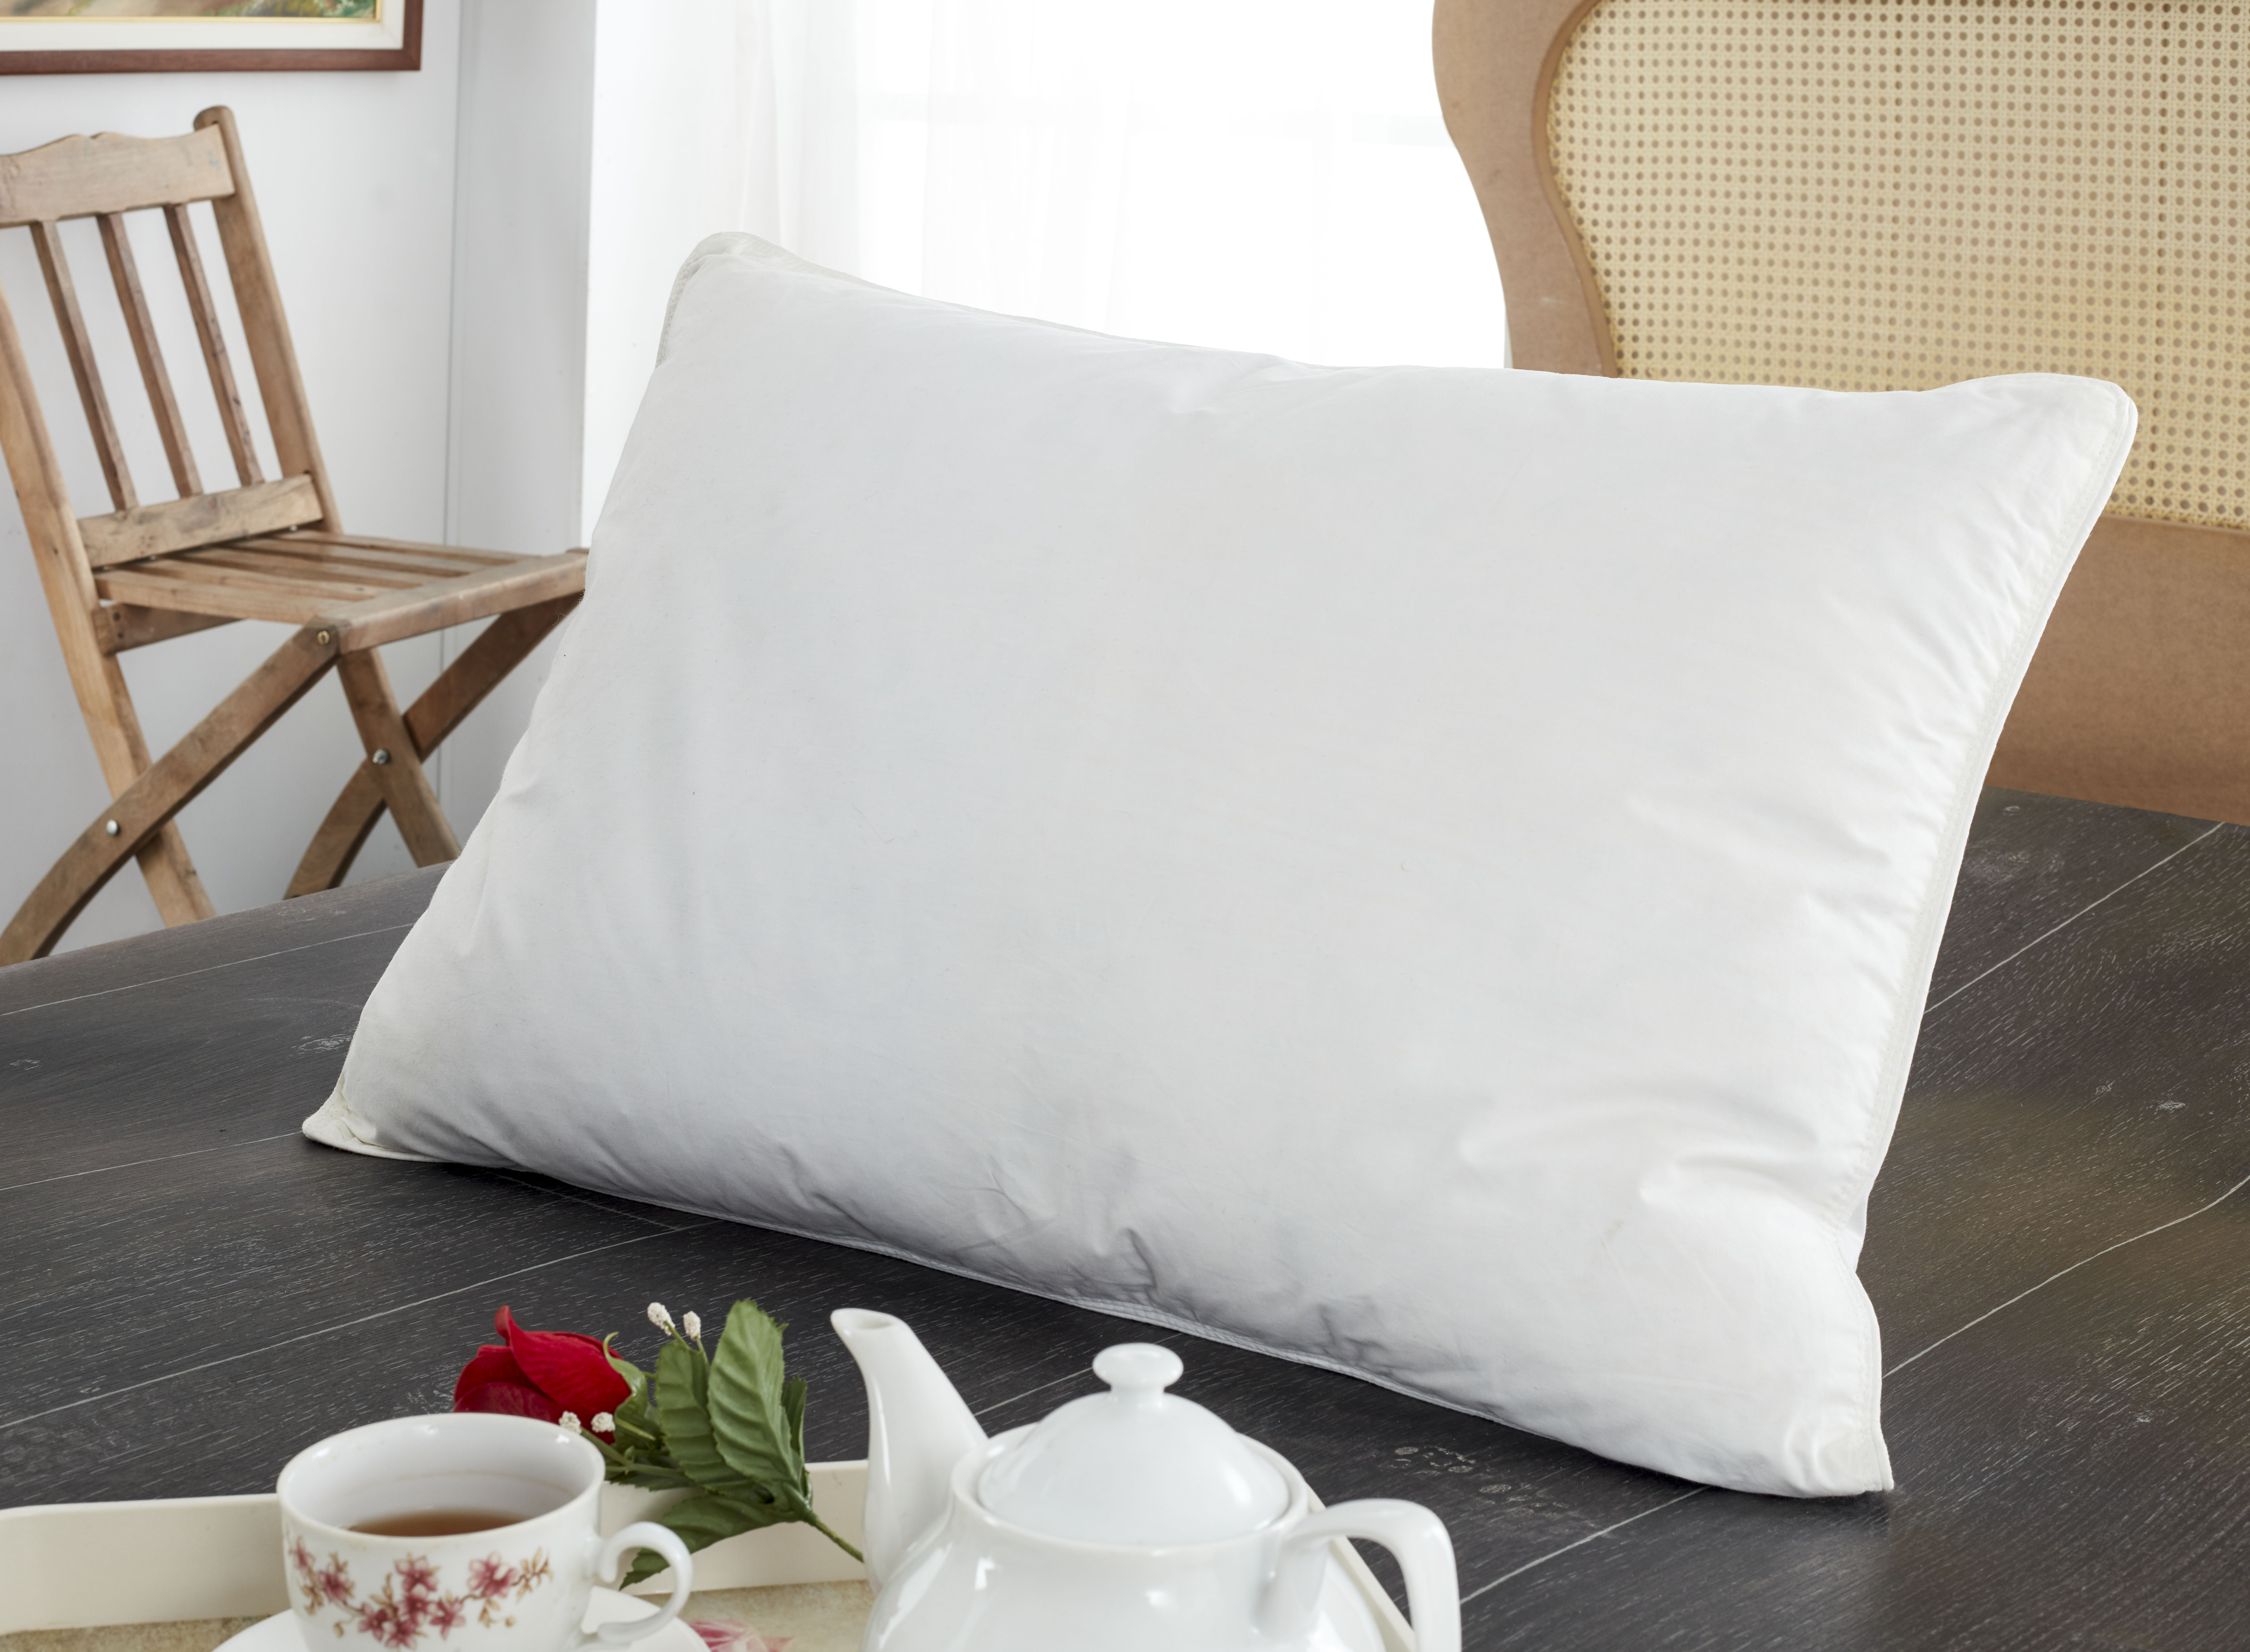 Pillow Category image